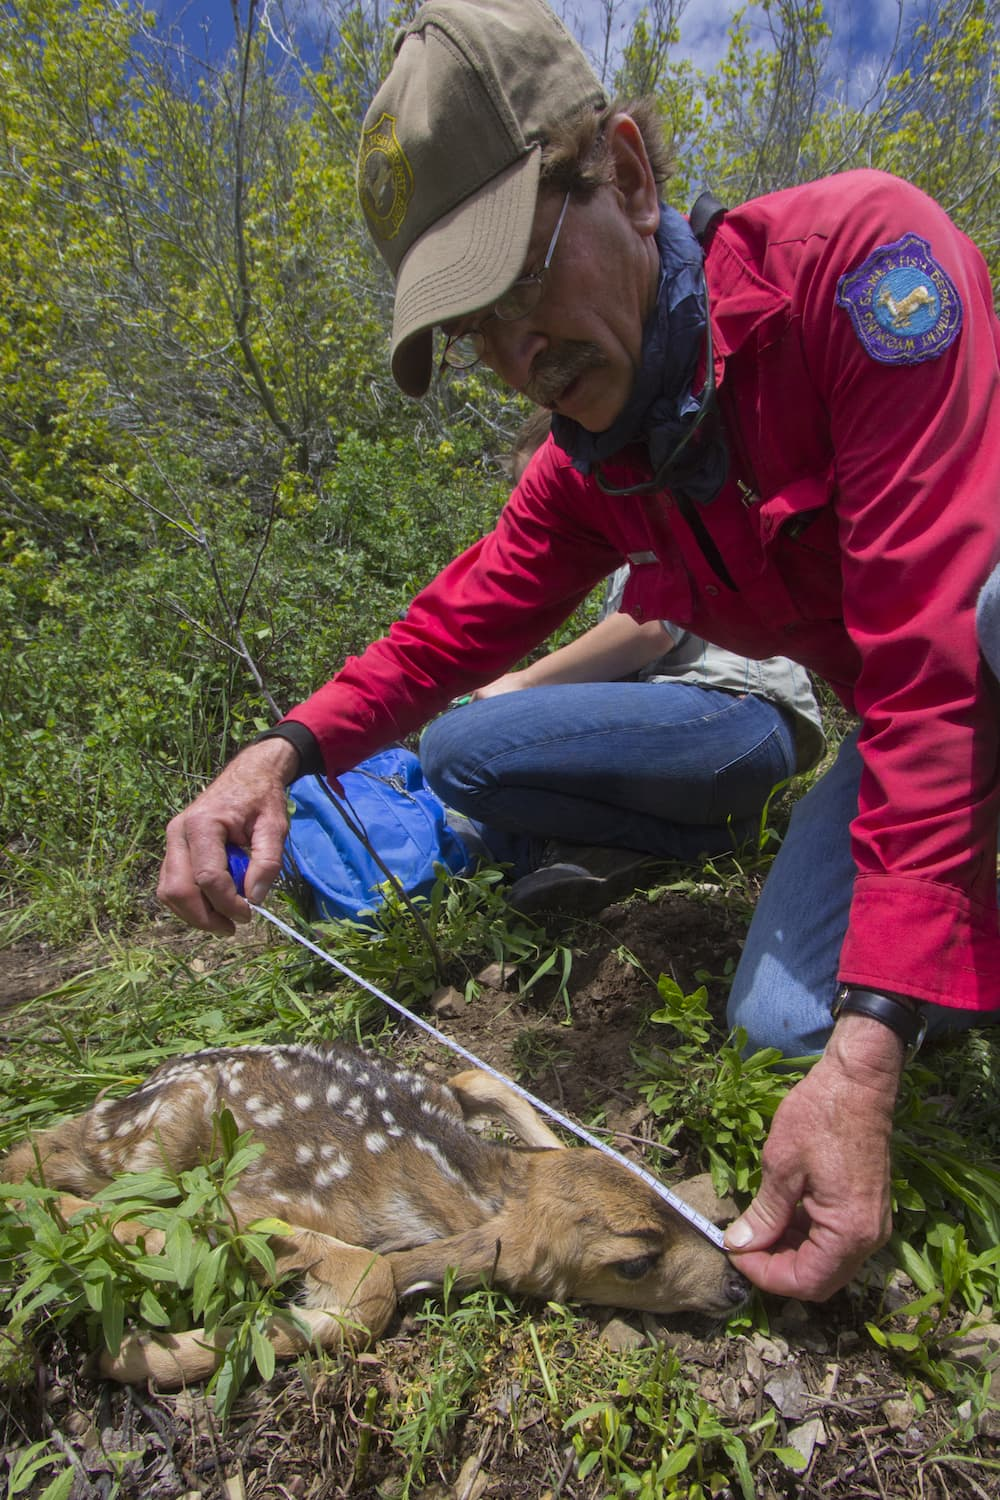 Devastated deer herd offers rare research opportunity for Wyo game and fish